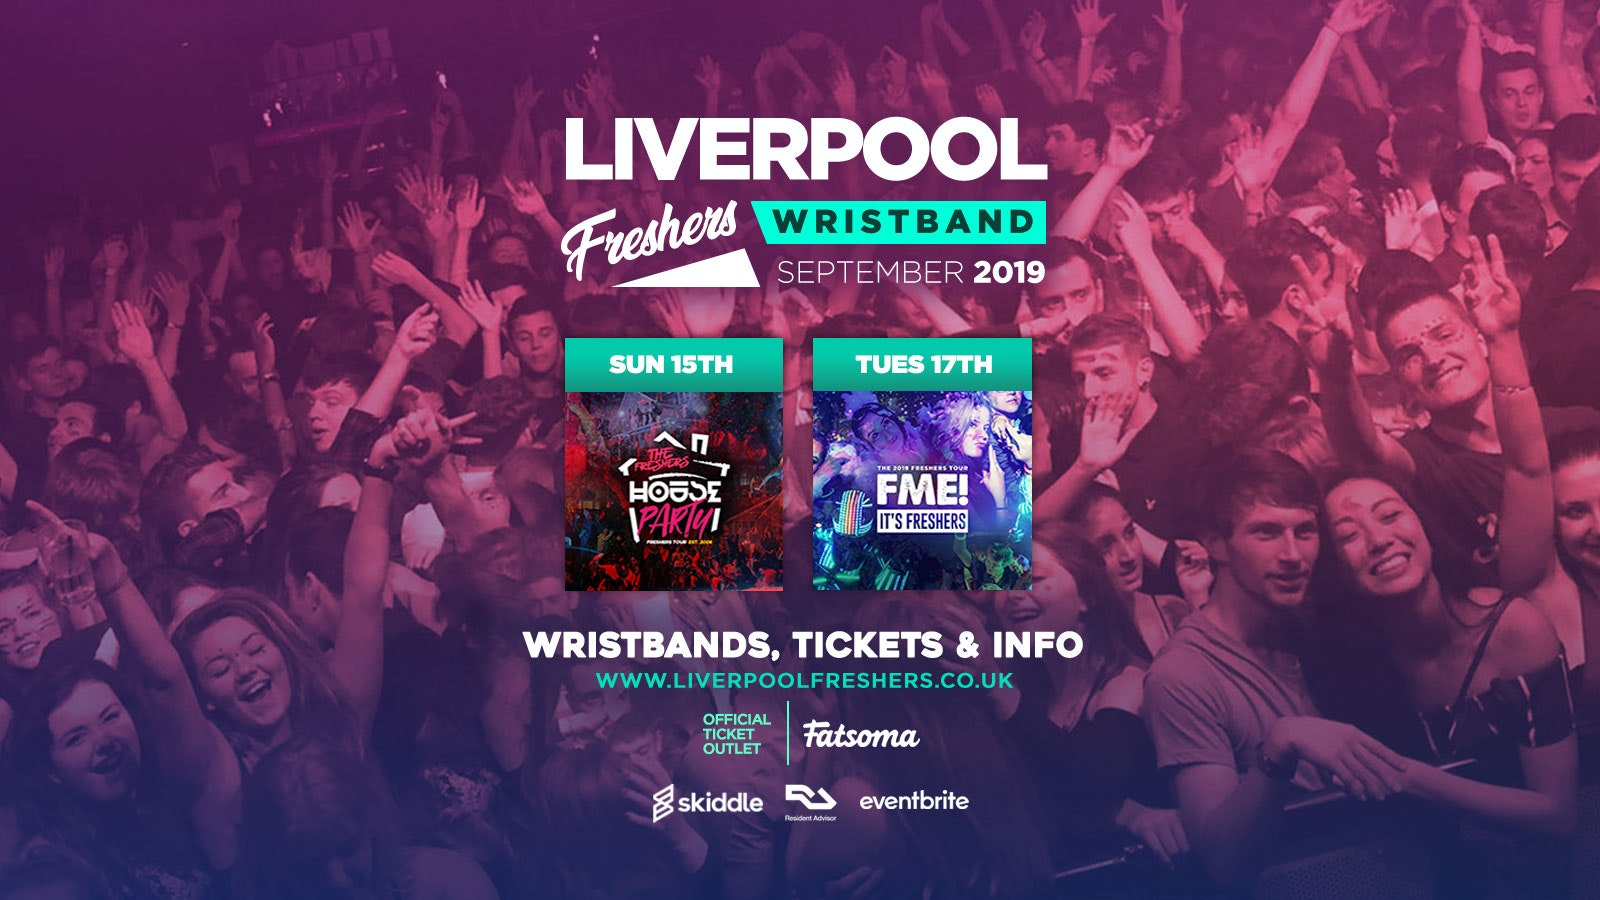 The Liverpool Freshers Pack /// F*CK ME & House Party Double Ticket